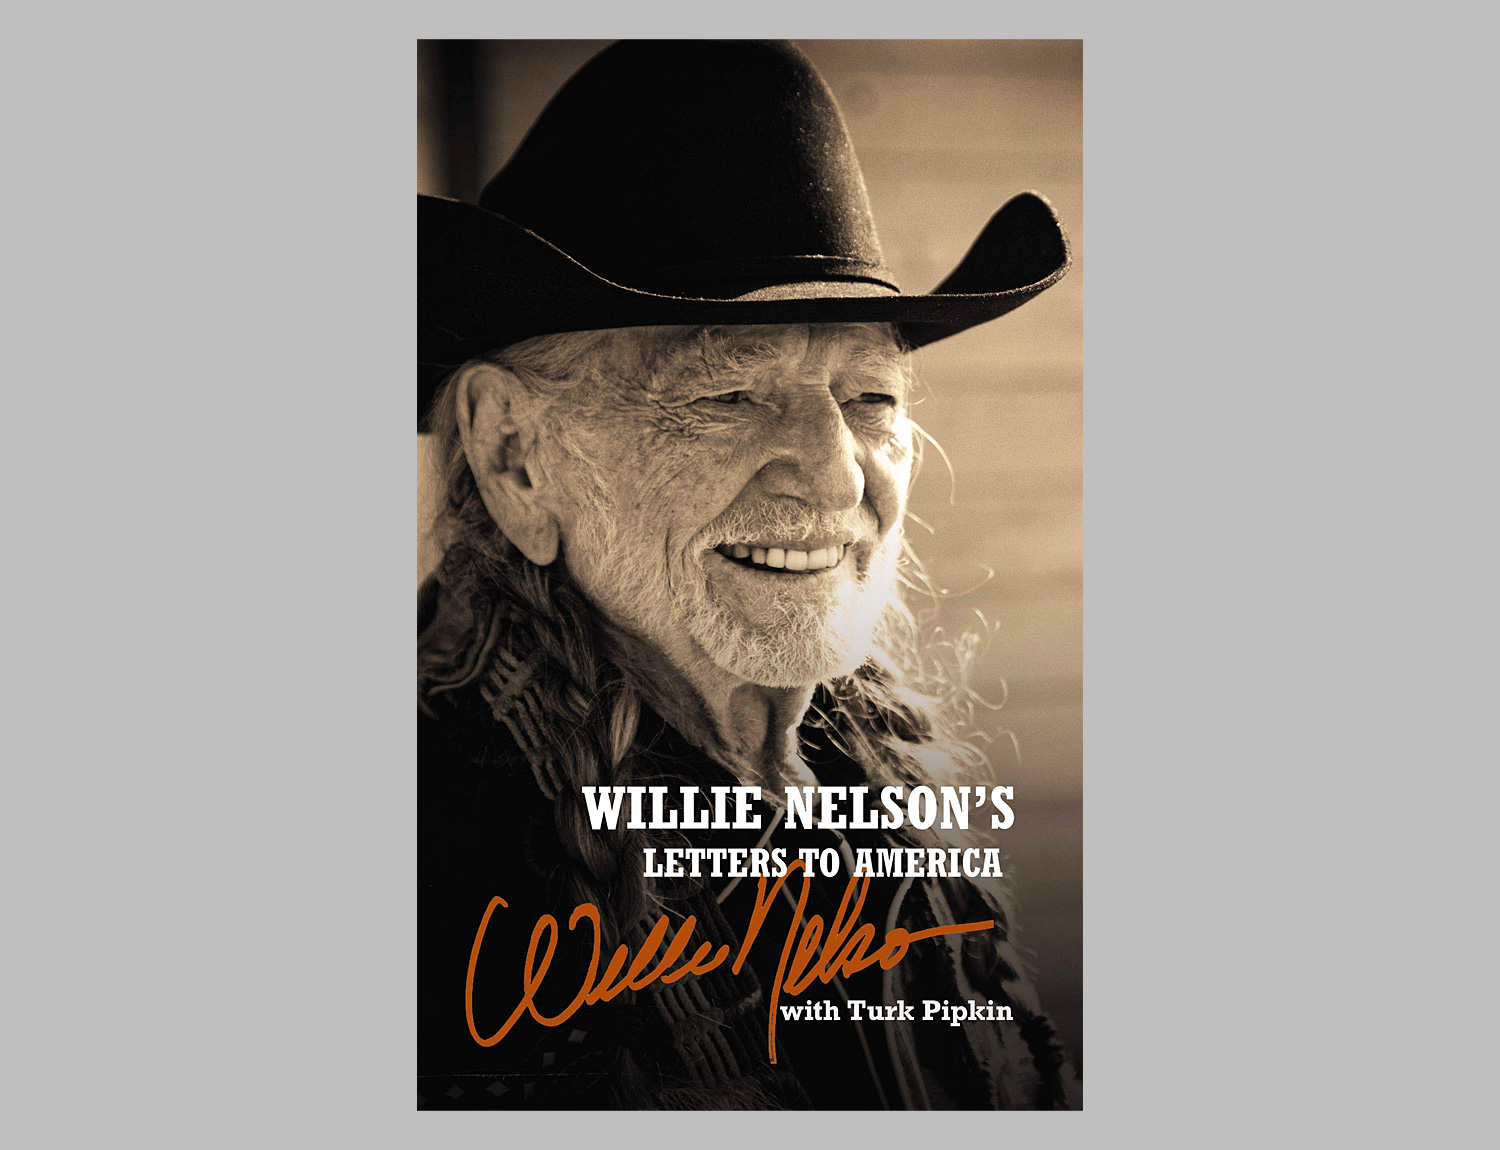 Willie Nelson's Letters to America at werd.com